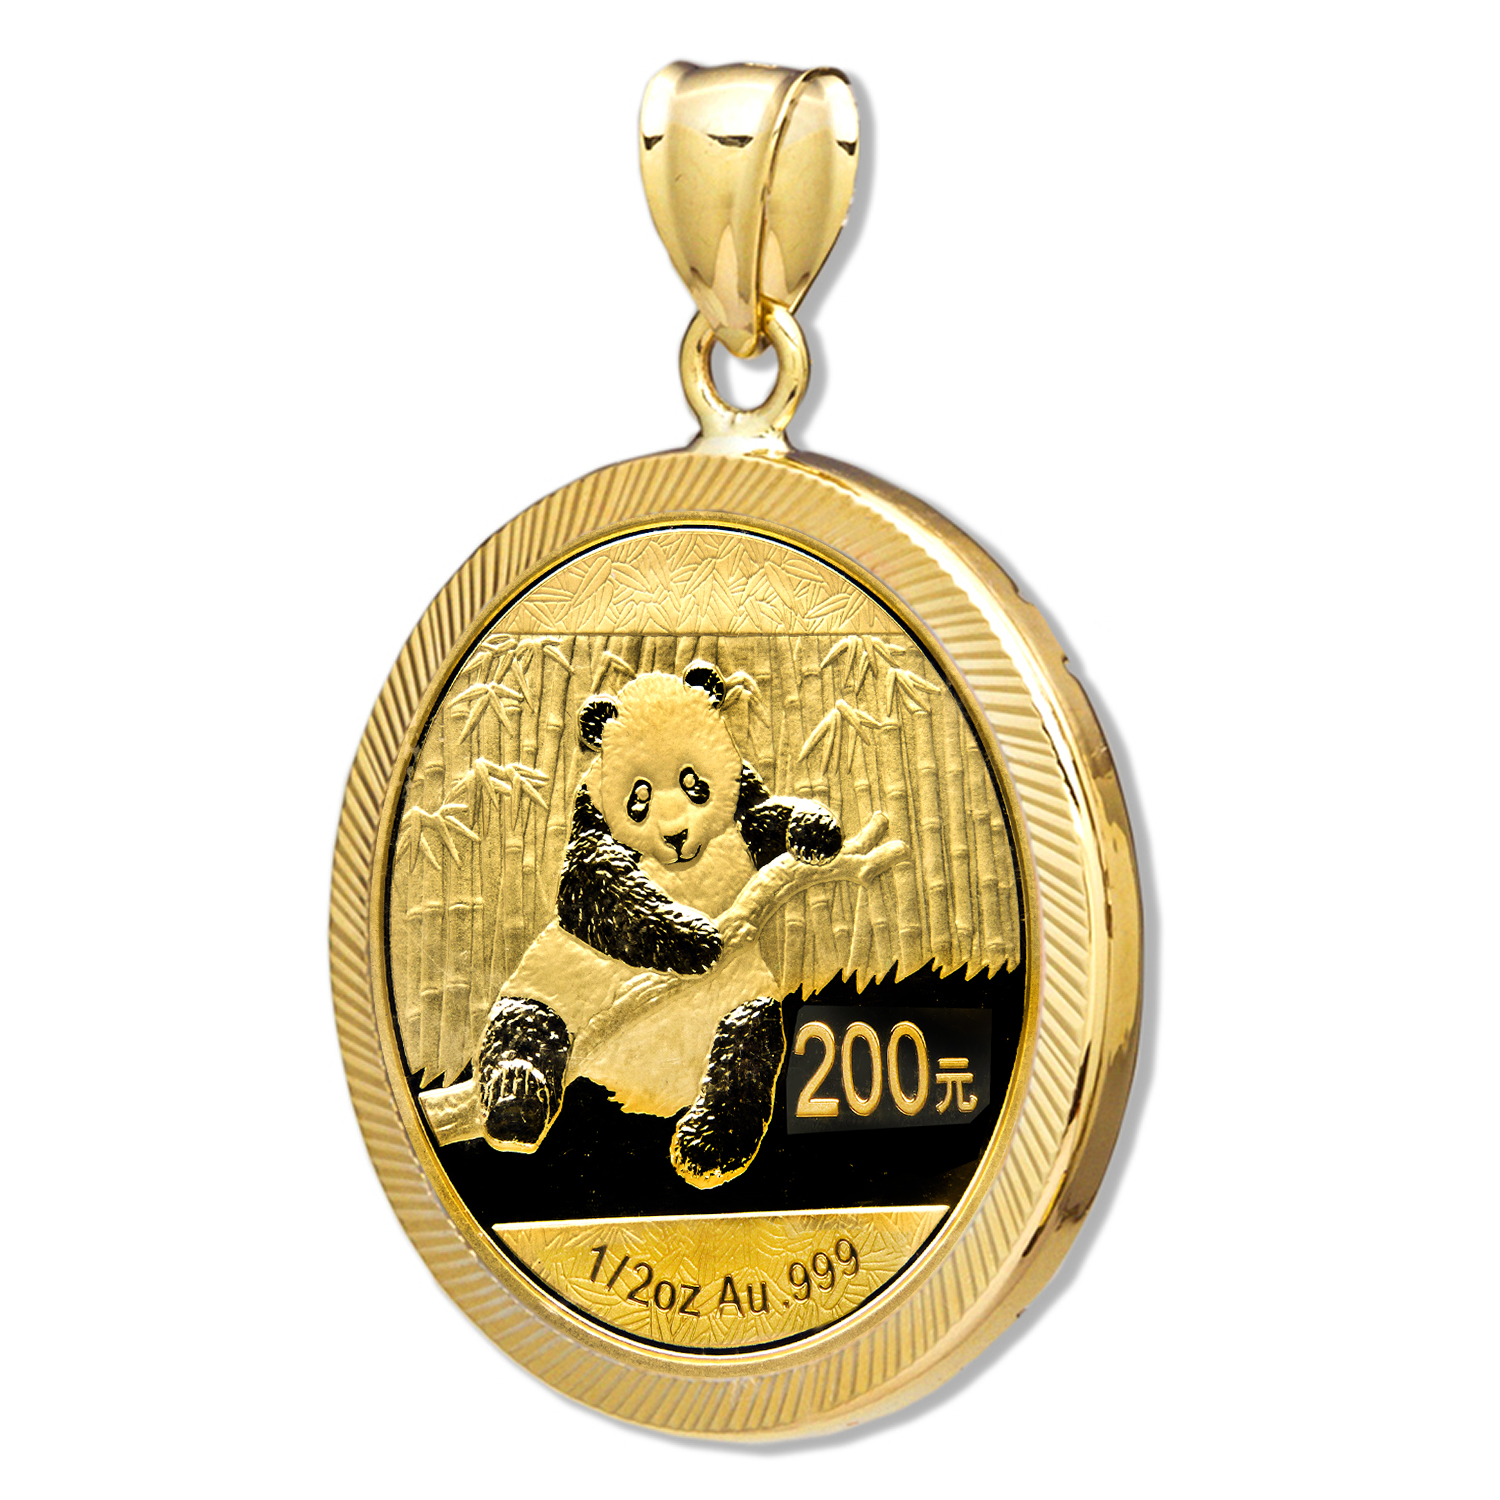 2014 1/2 oz Gold Panda Pendant (Diamond-Prong Bezel)